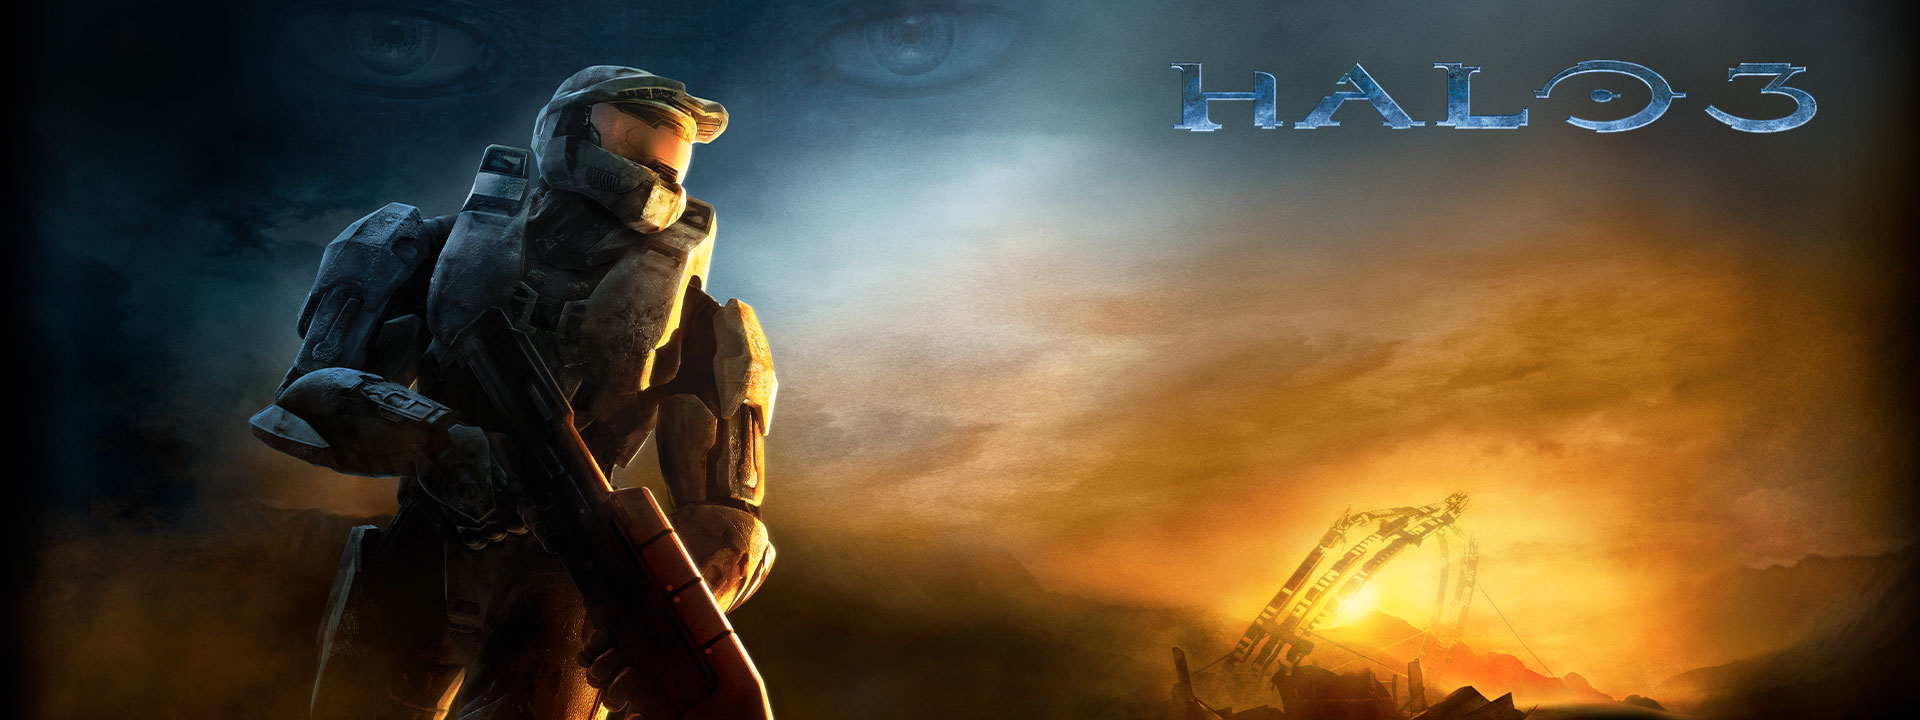 Halo 3, Master Chief looks away from the sunset-lit horizon, a pair of eyes is overlaid on the background